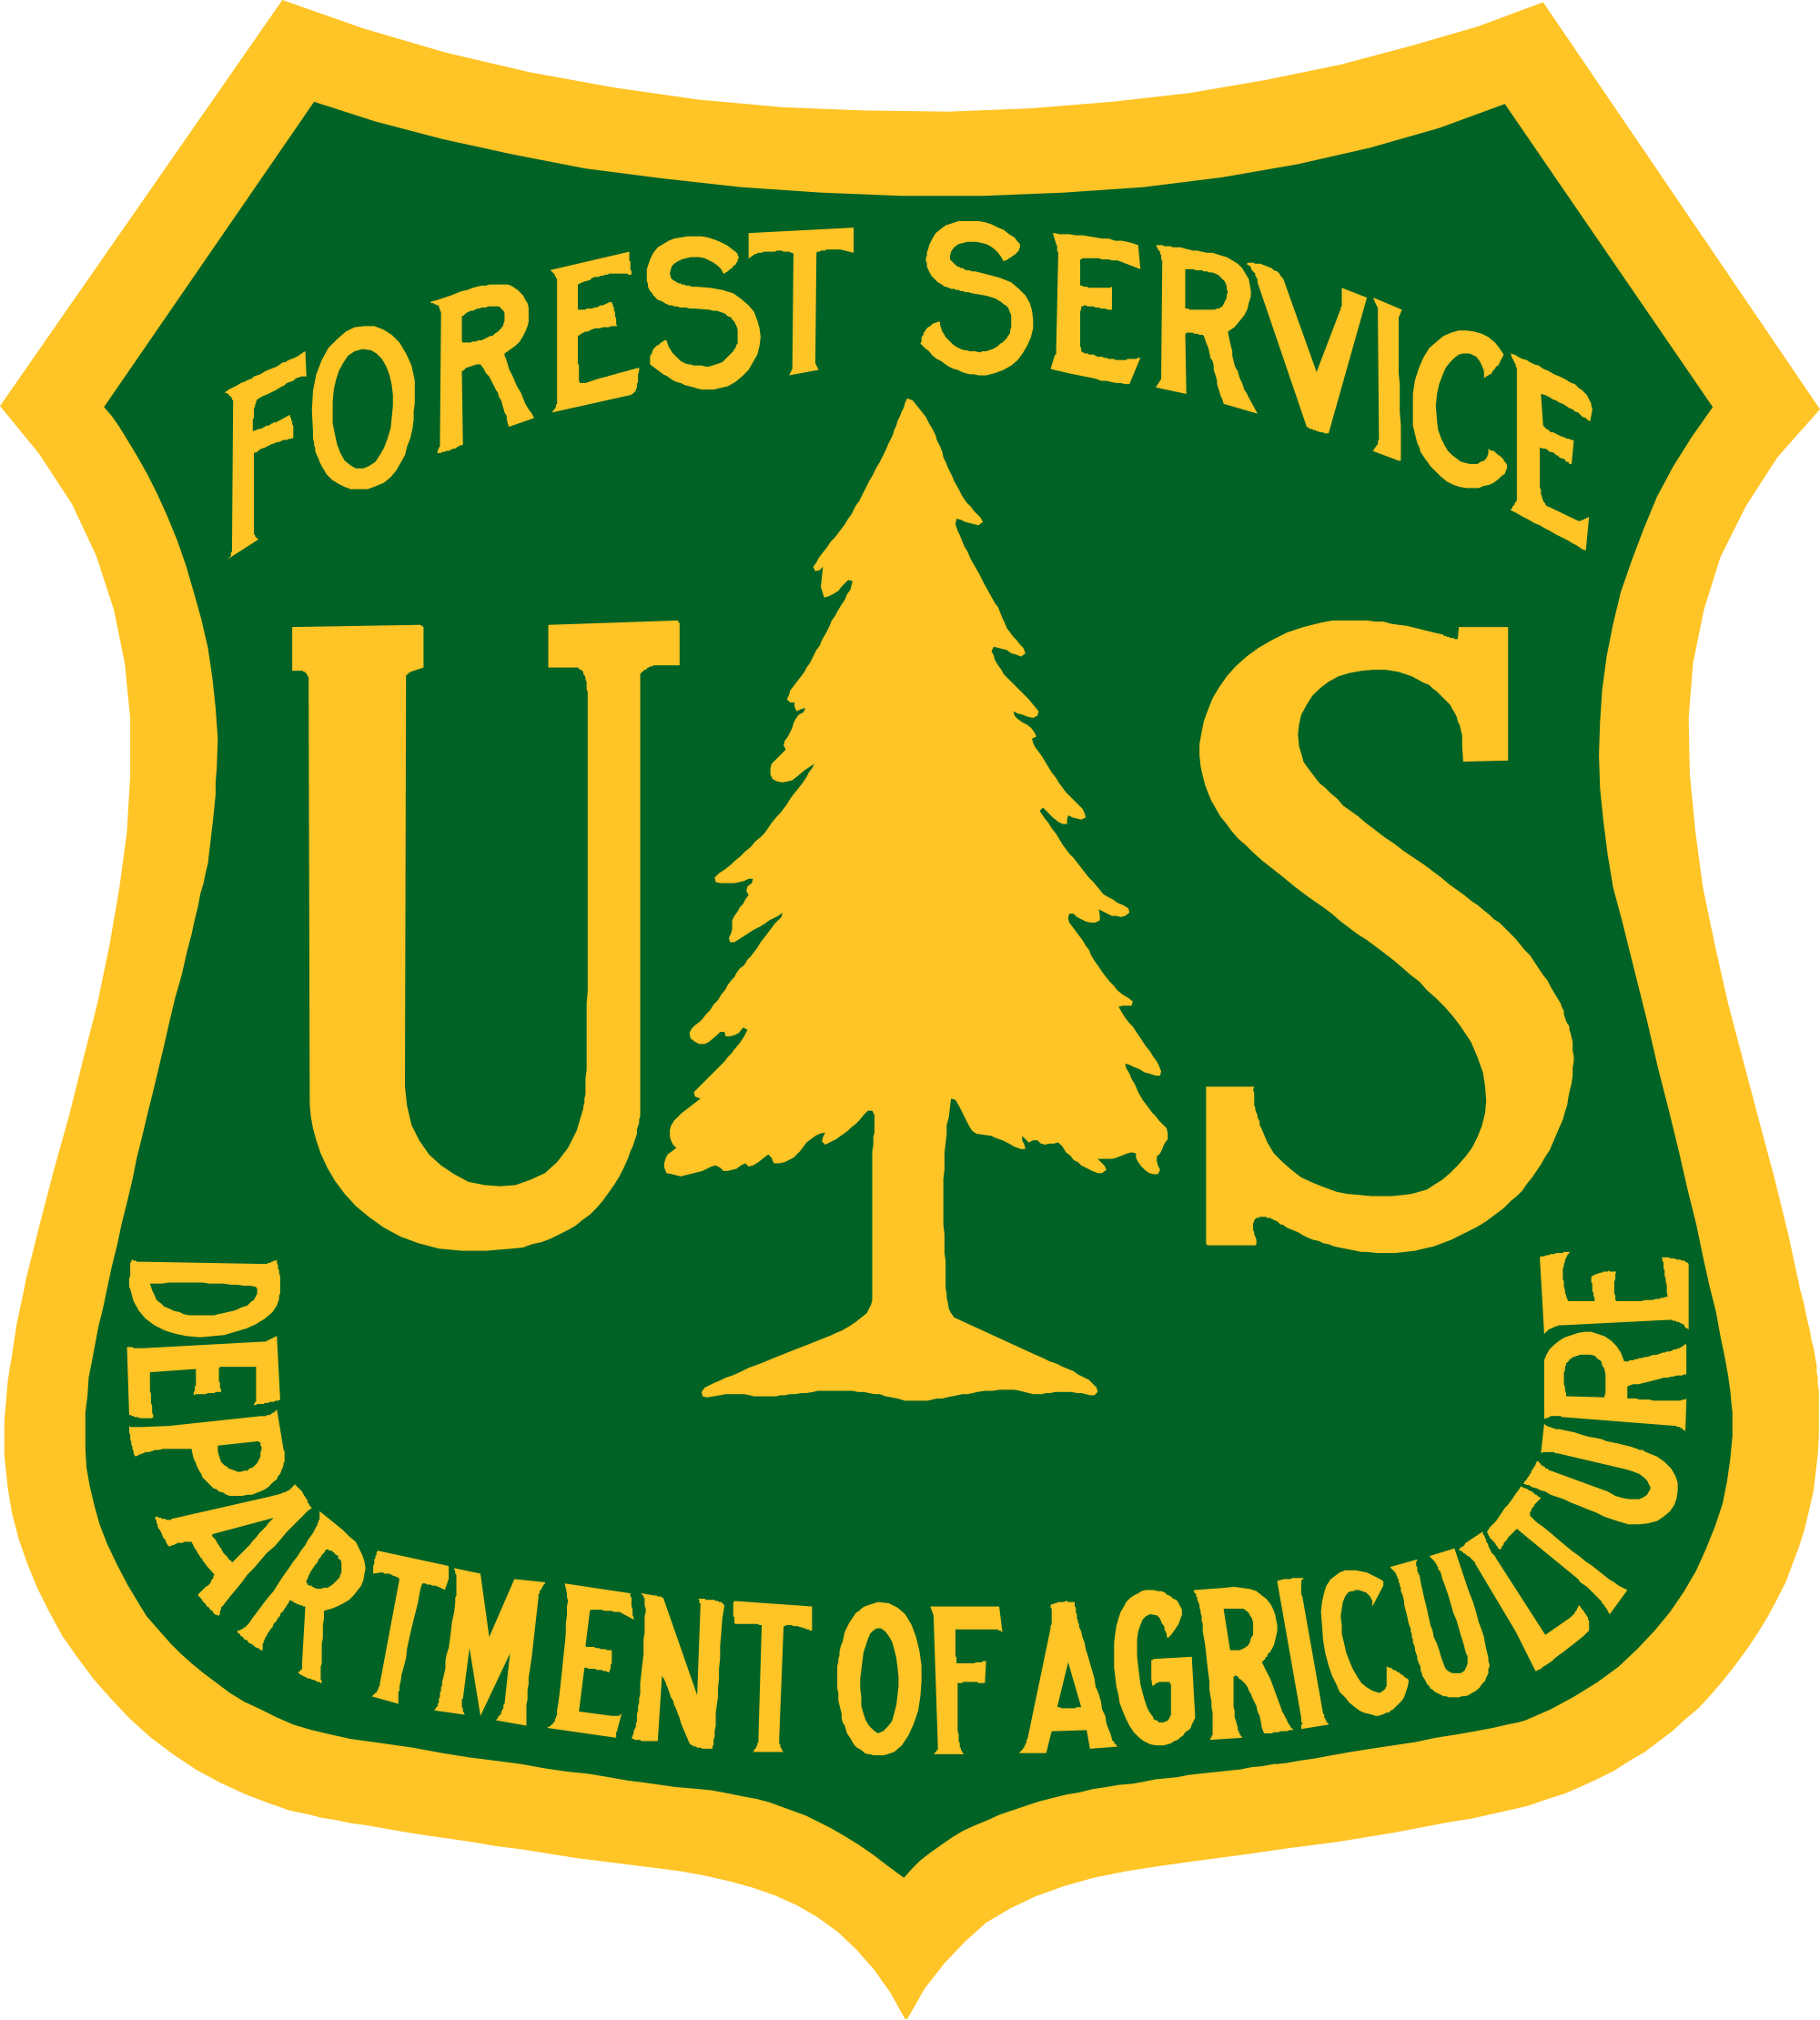 2000px-Forestservice-shield.svg